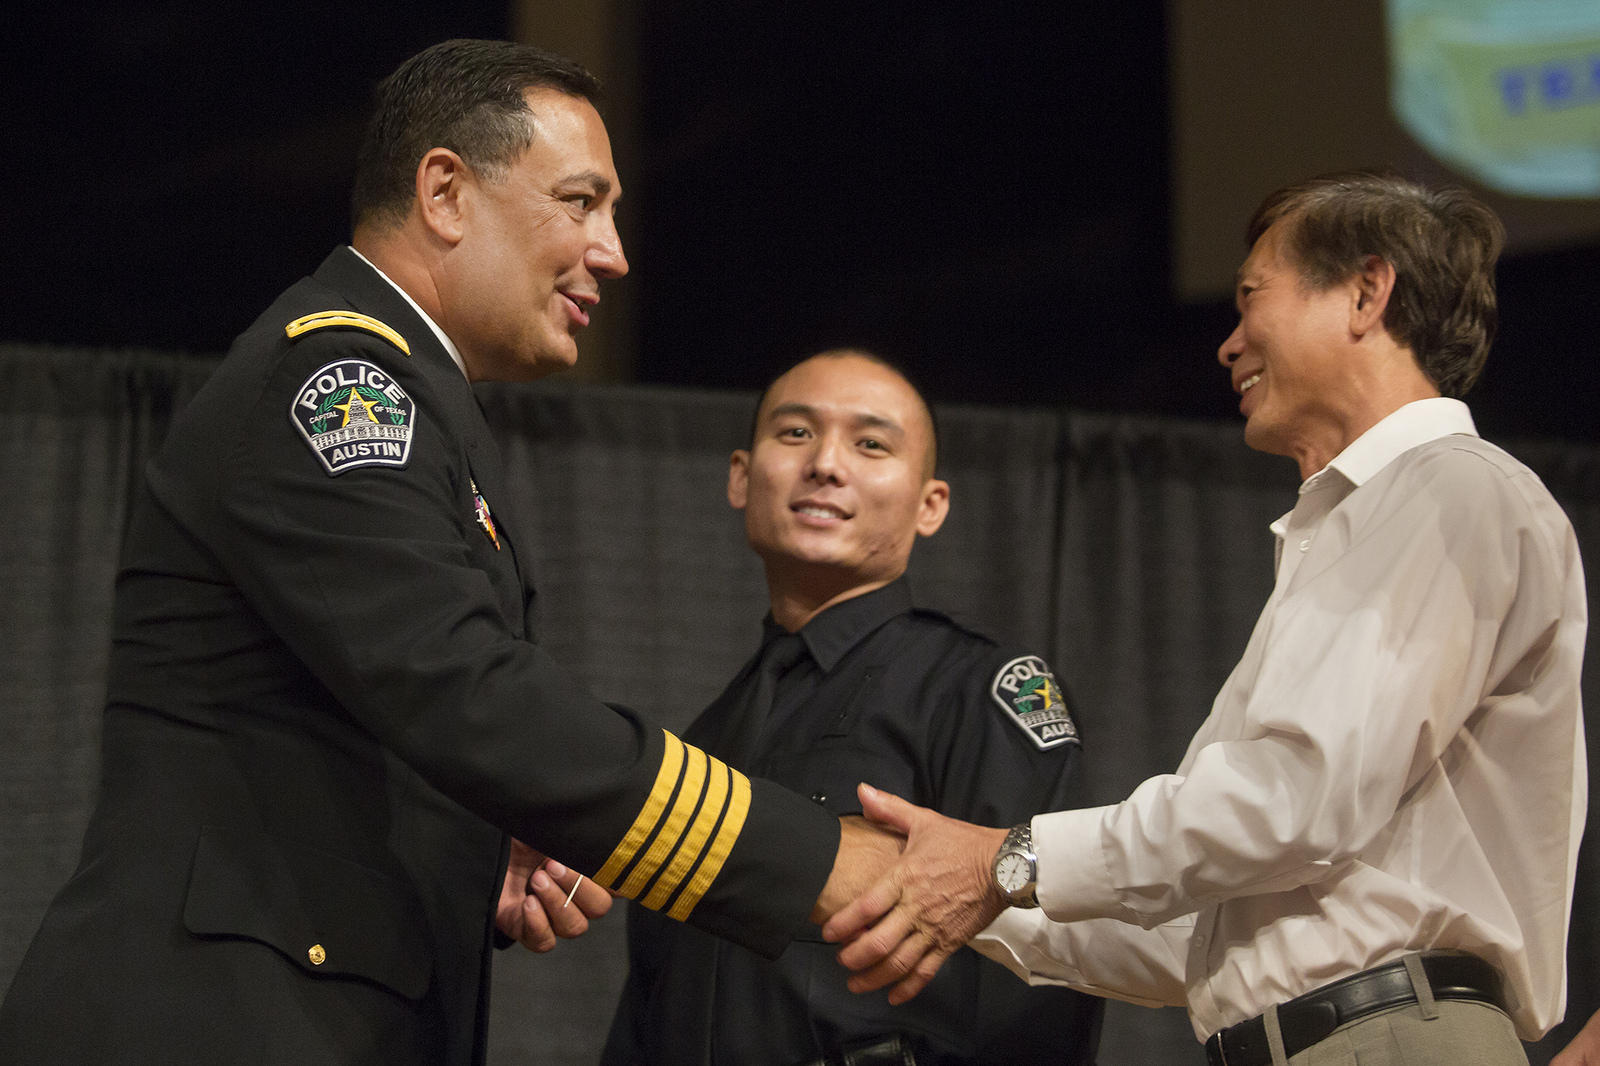 A Day After the Dallas Police Shootings, APD Graduates 37